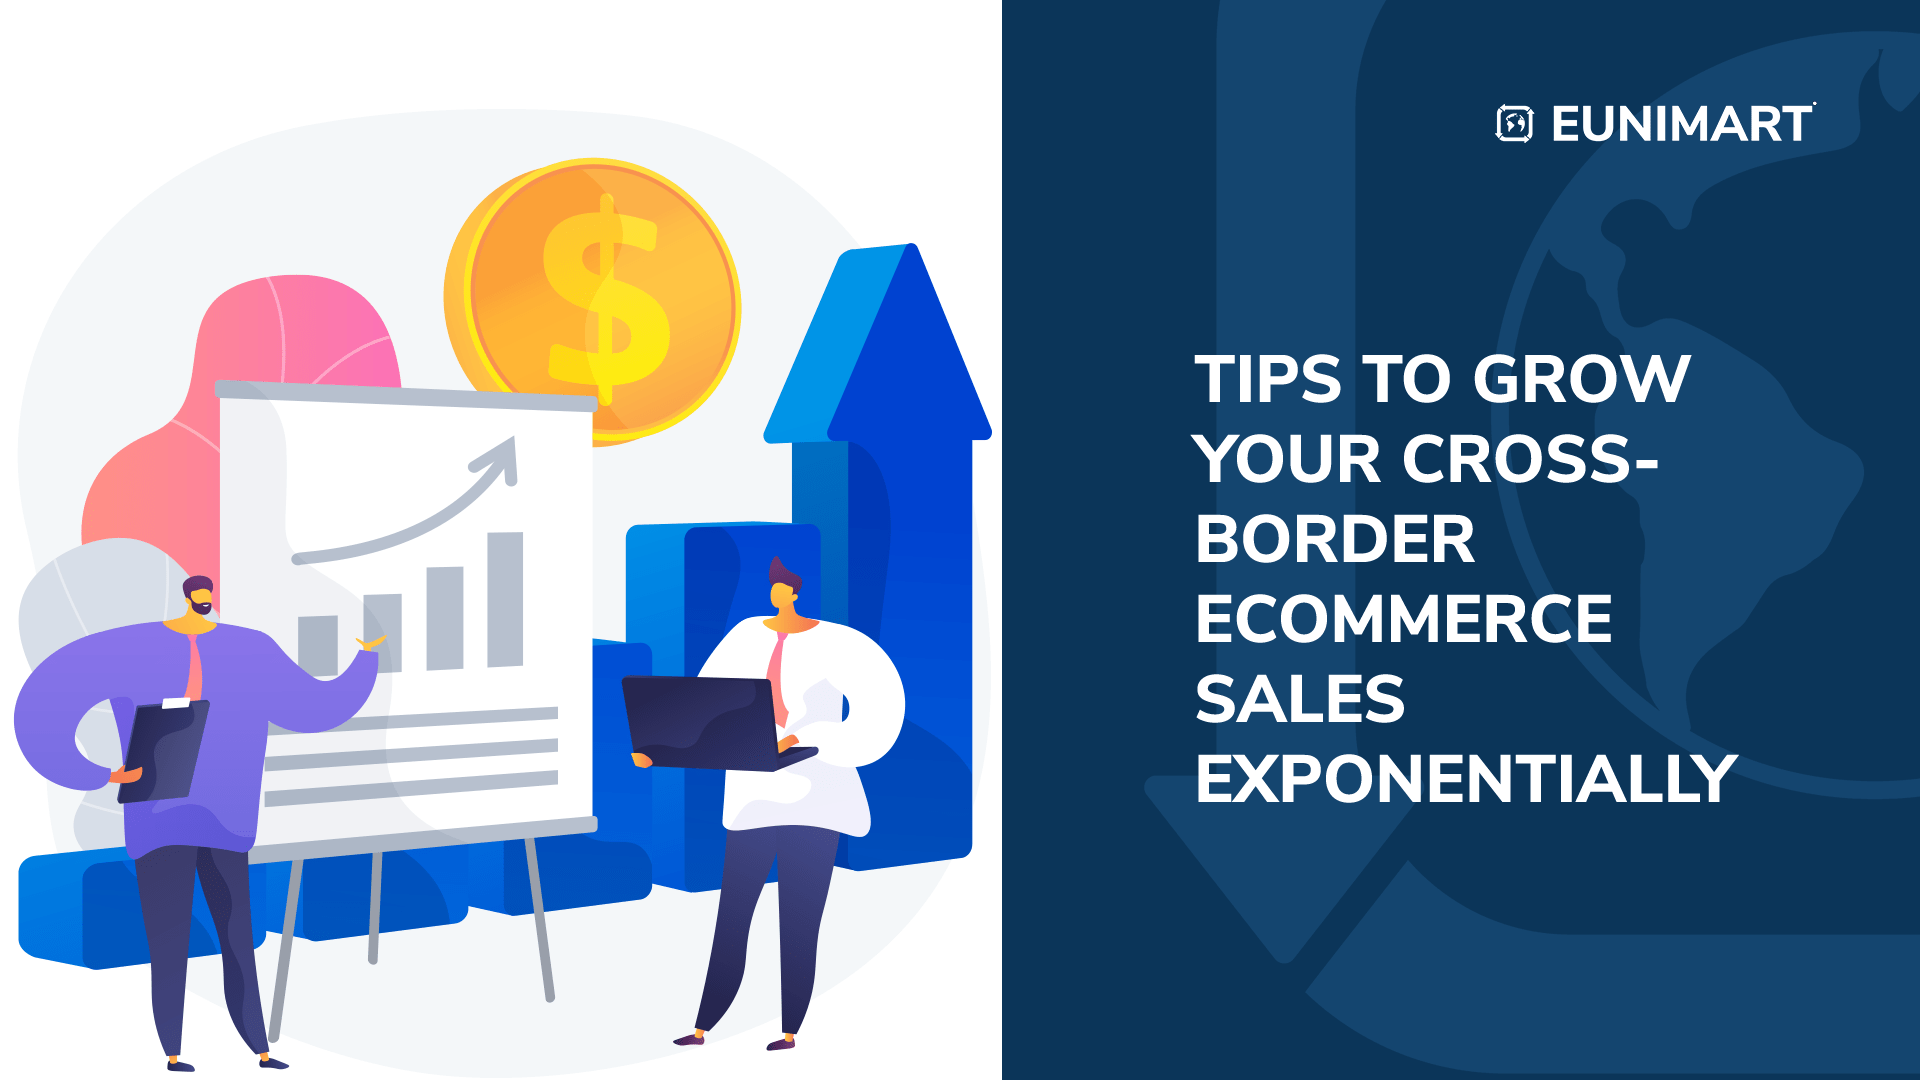 Tips to Grow Your Cross-Border Ecommerce Sales Exponentially